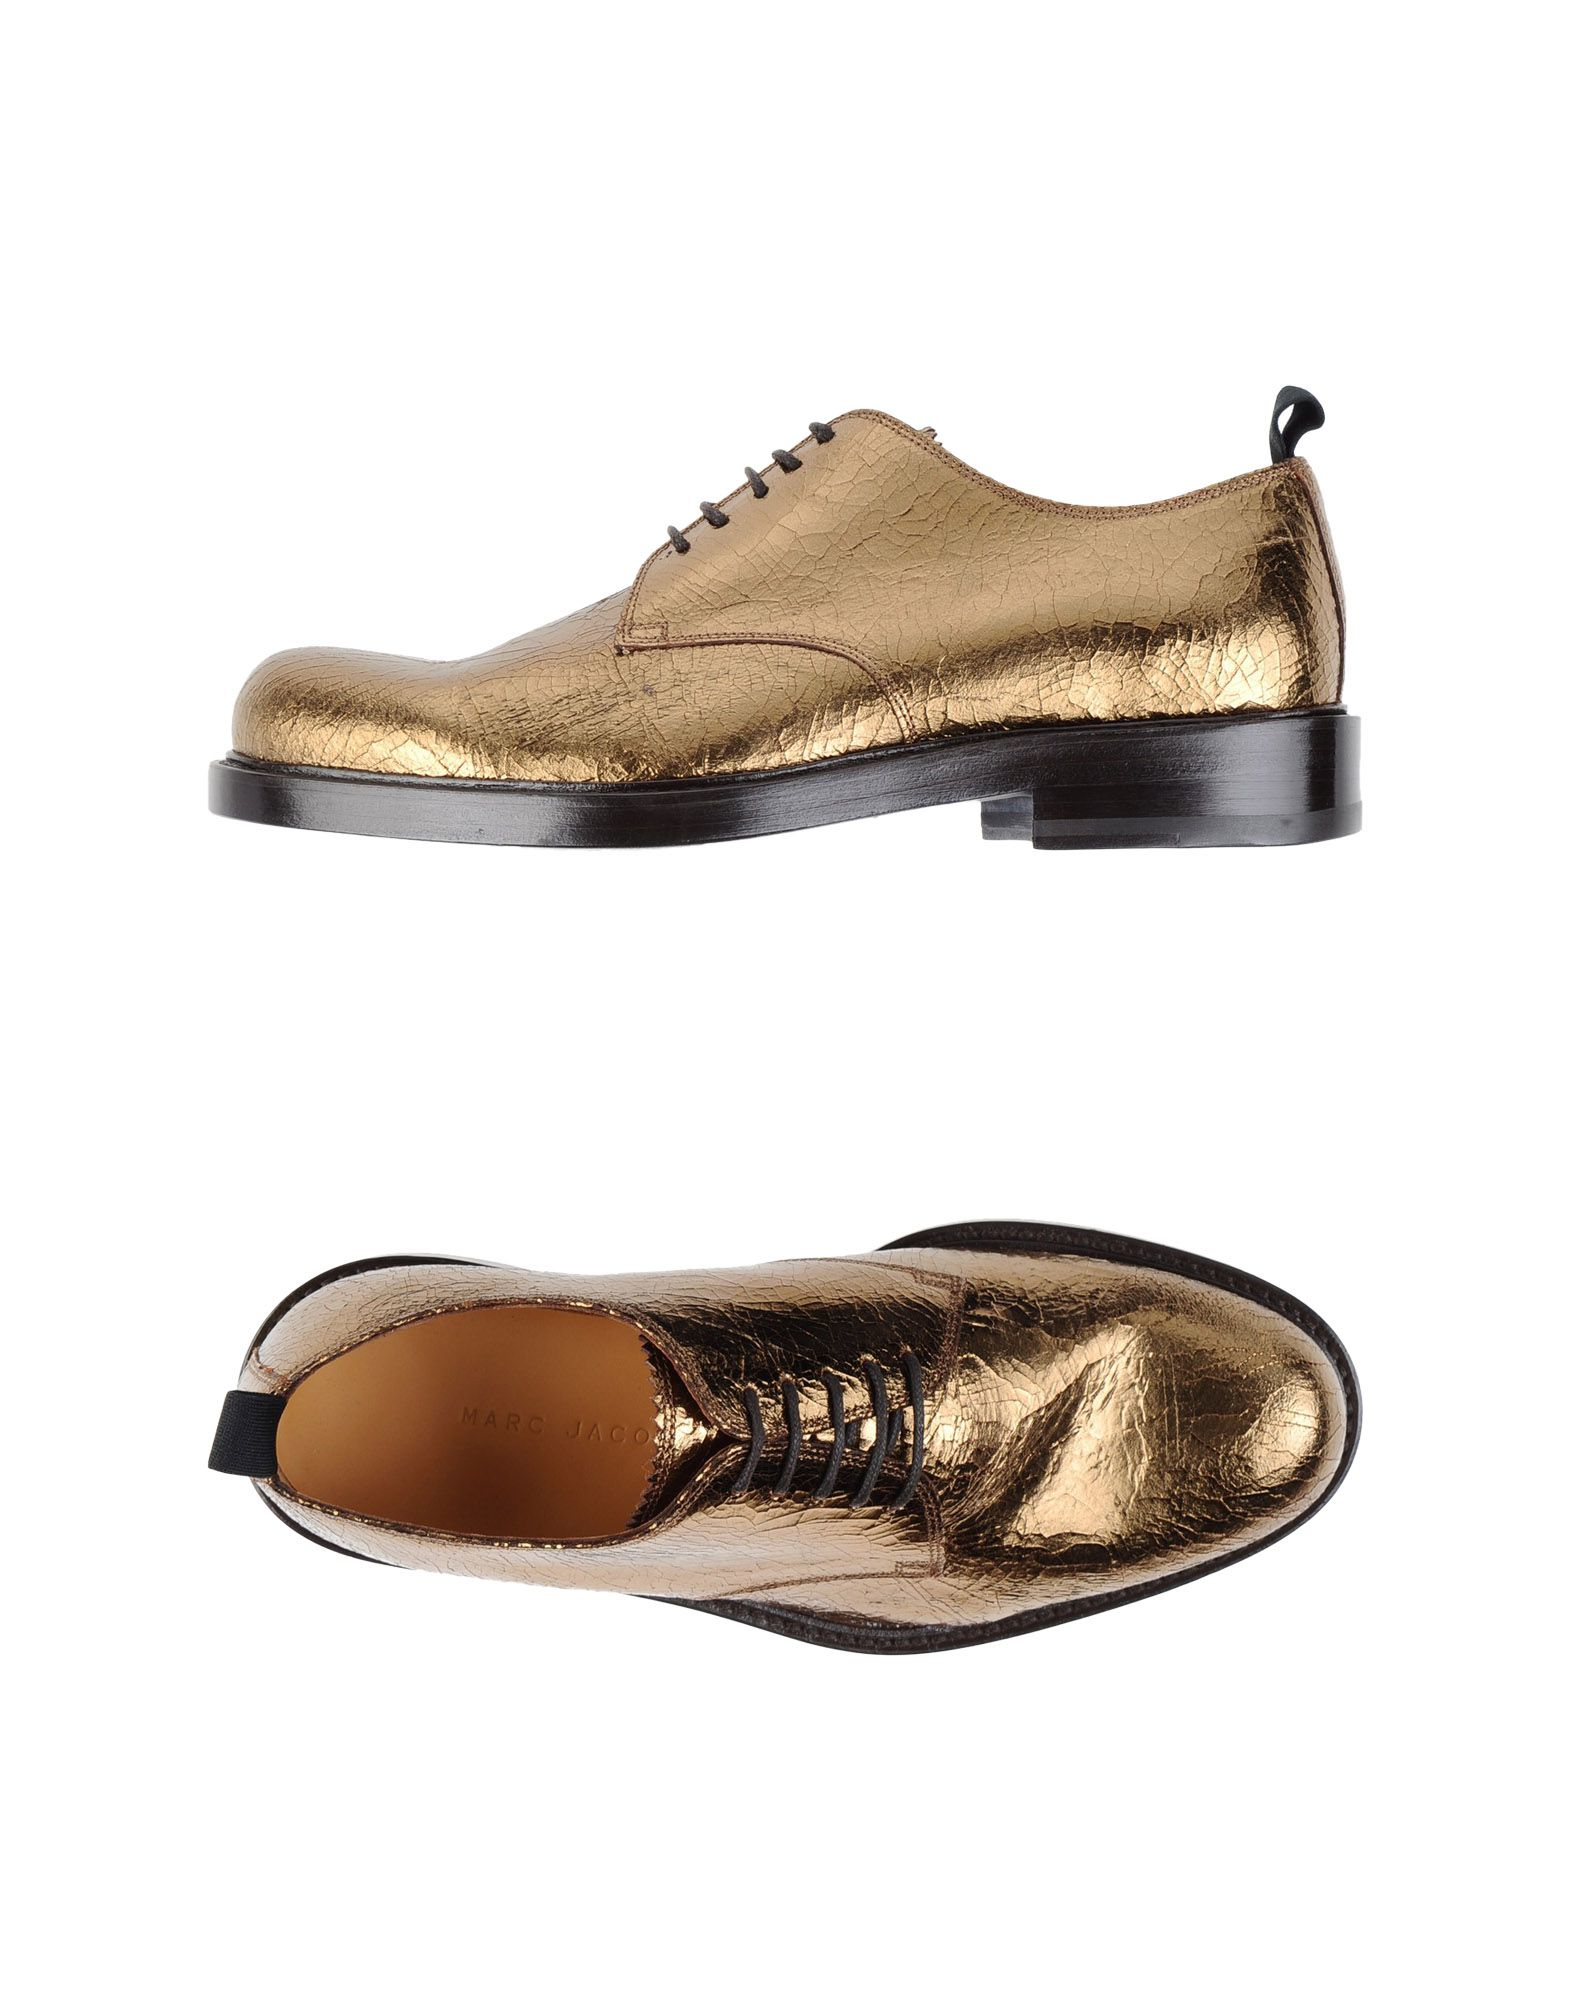 Marc Jacobs Mens Shoes Sale